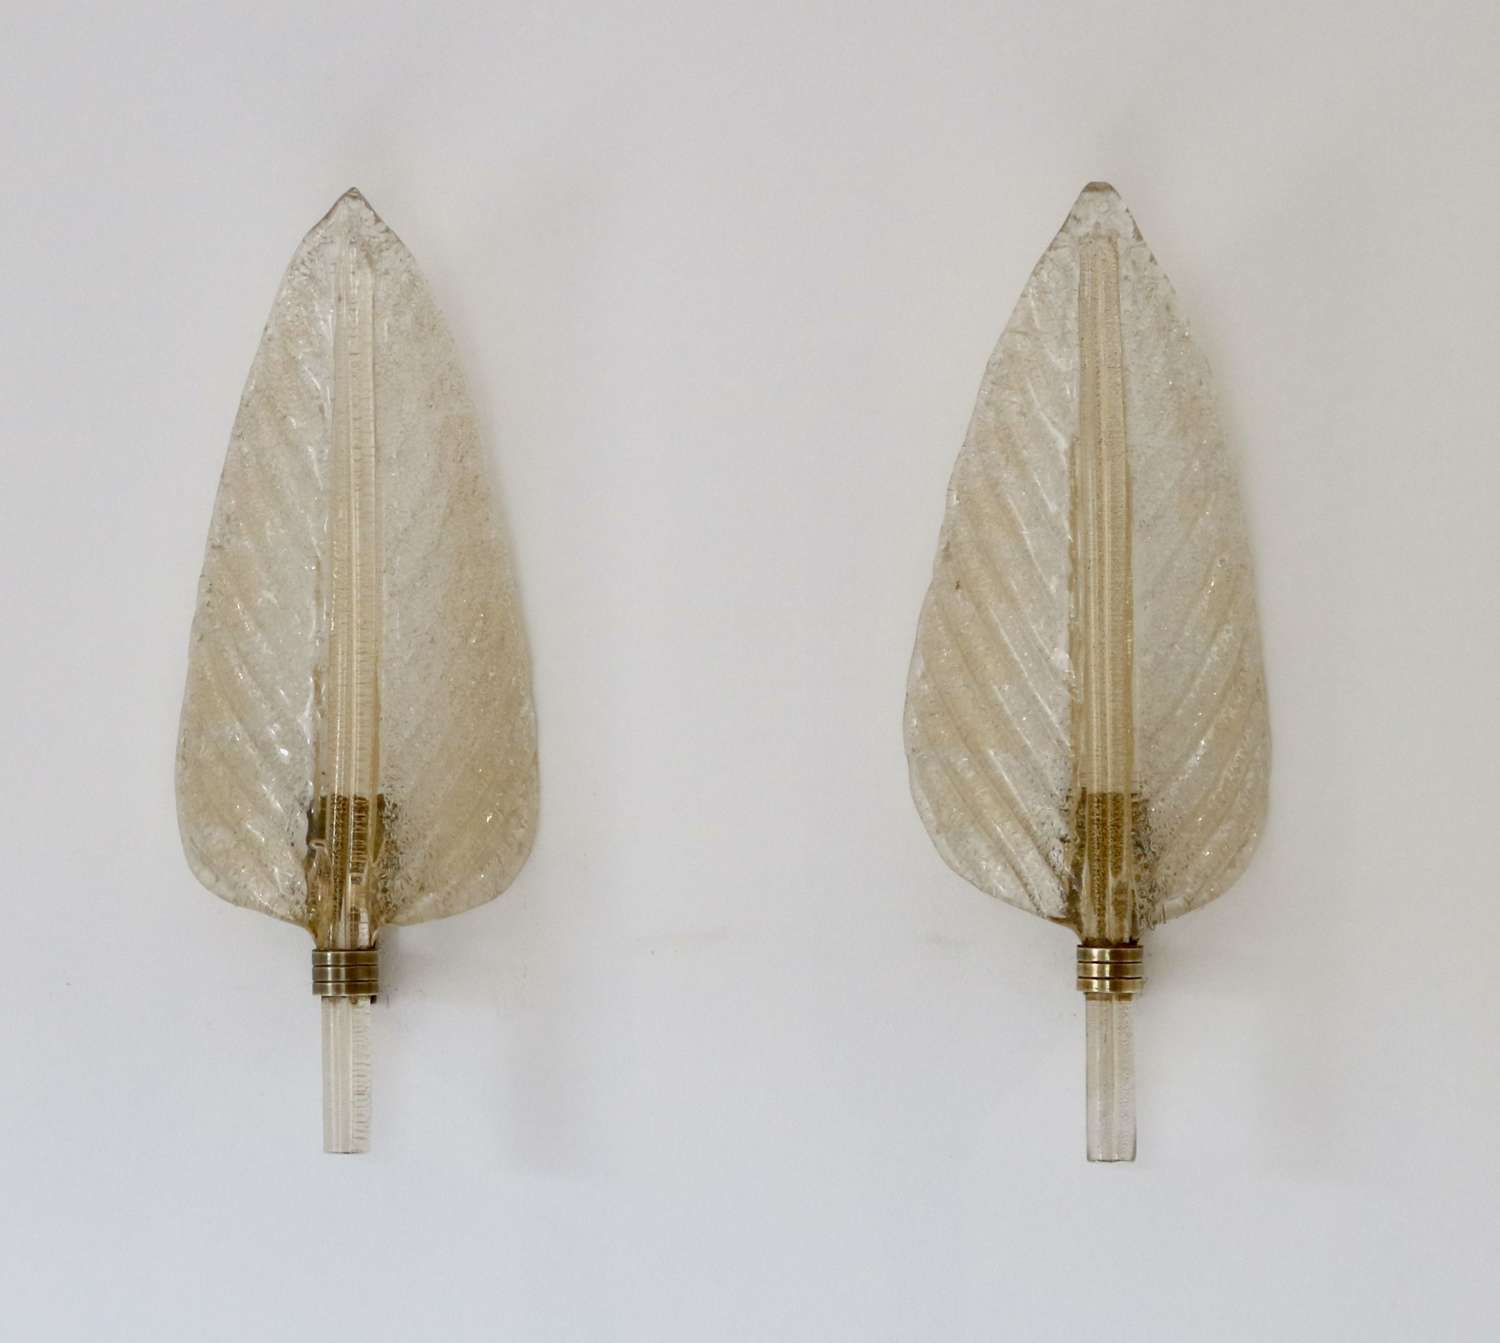 Pair of Glass Leaf Wall Lights